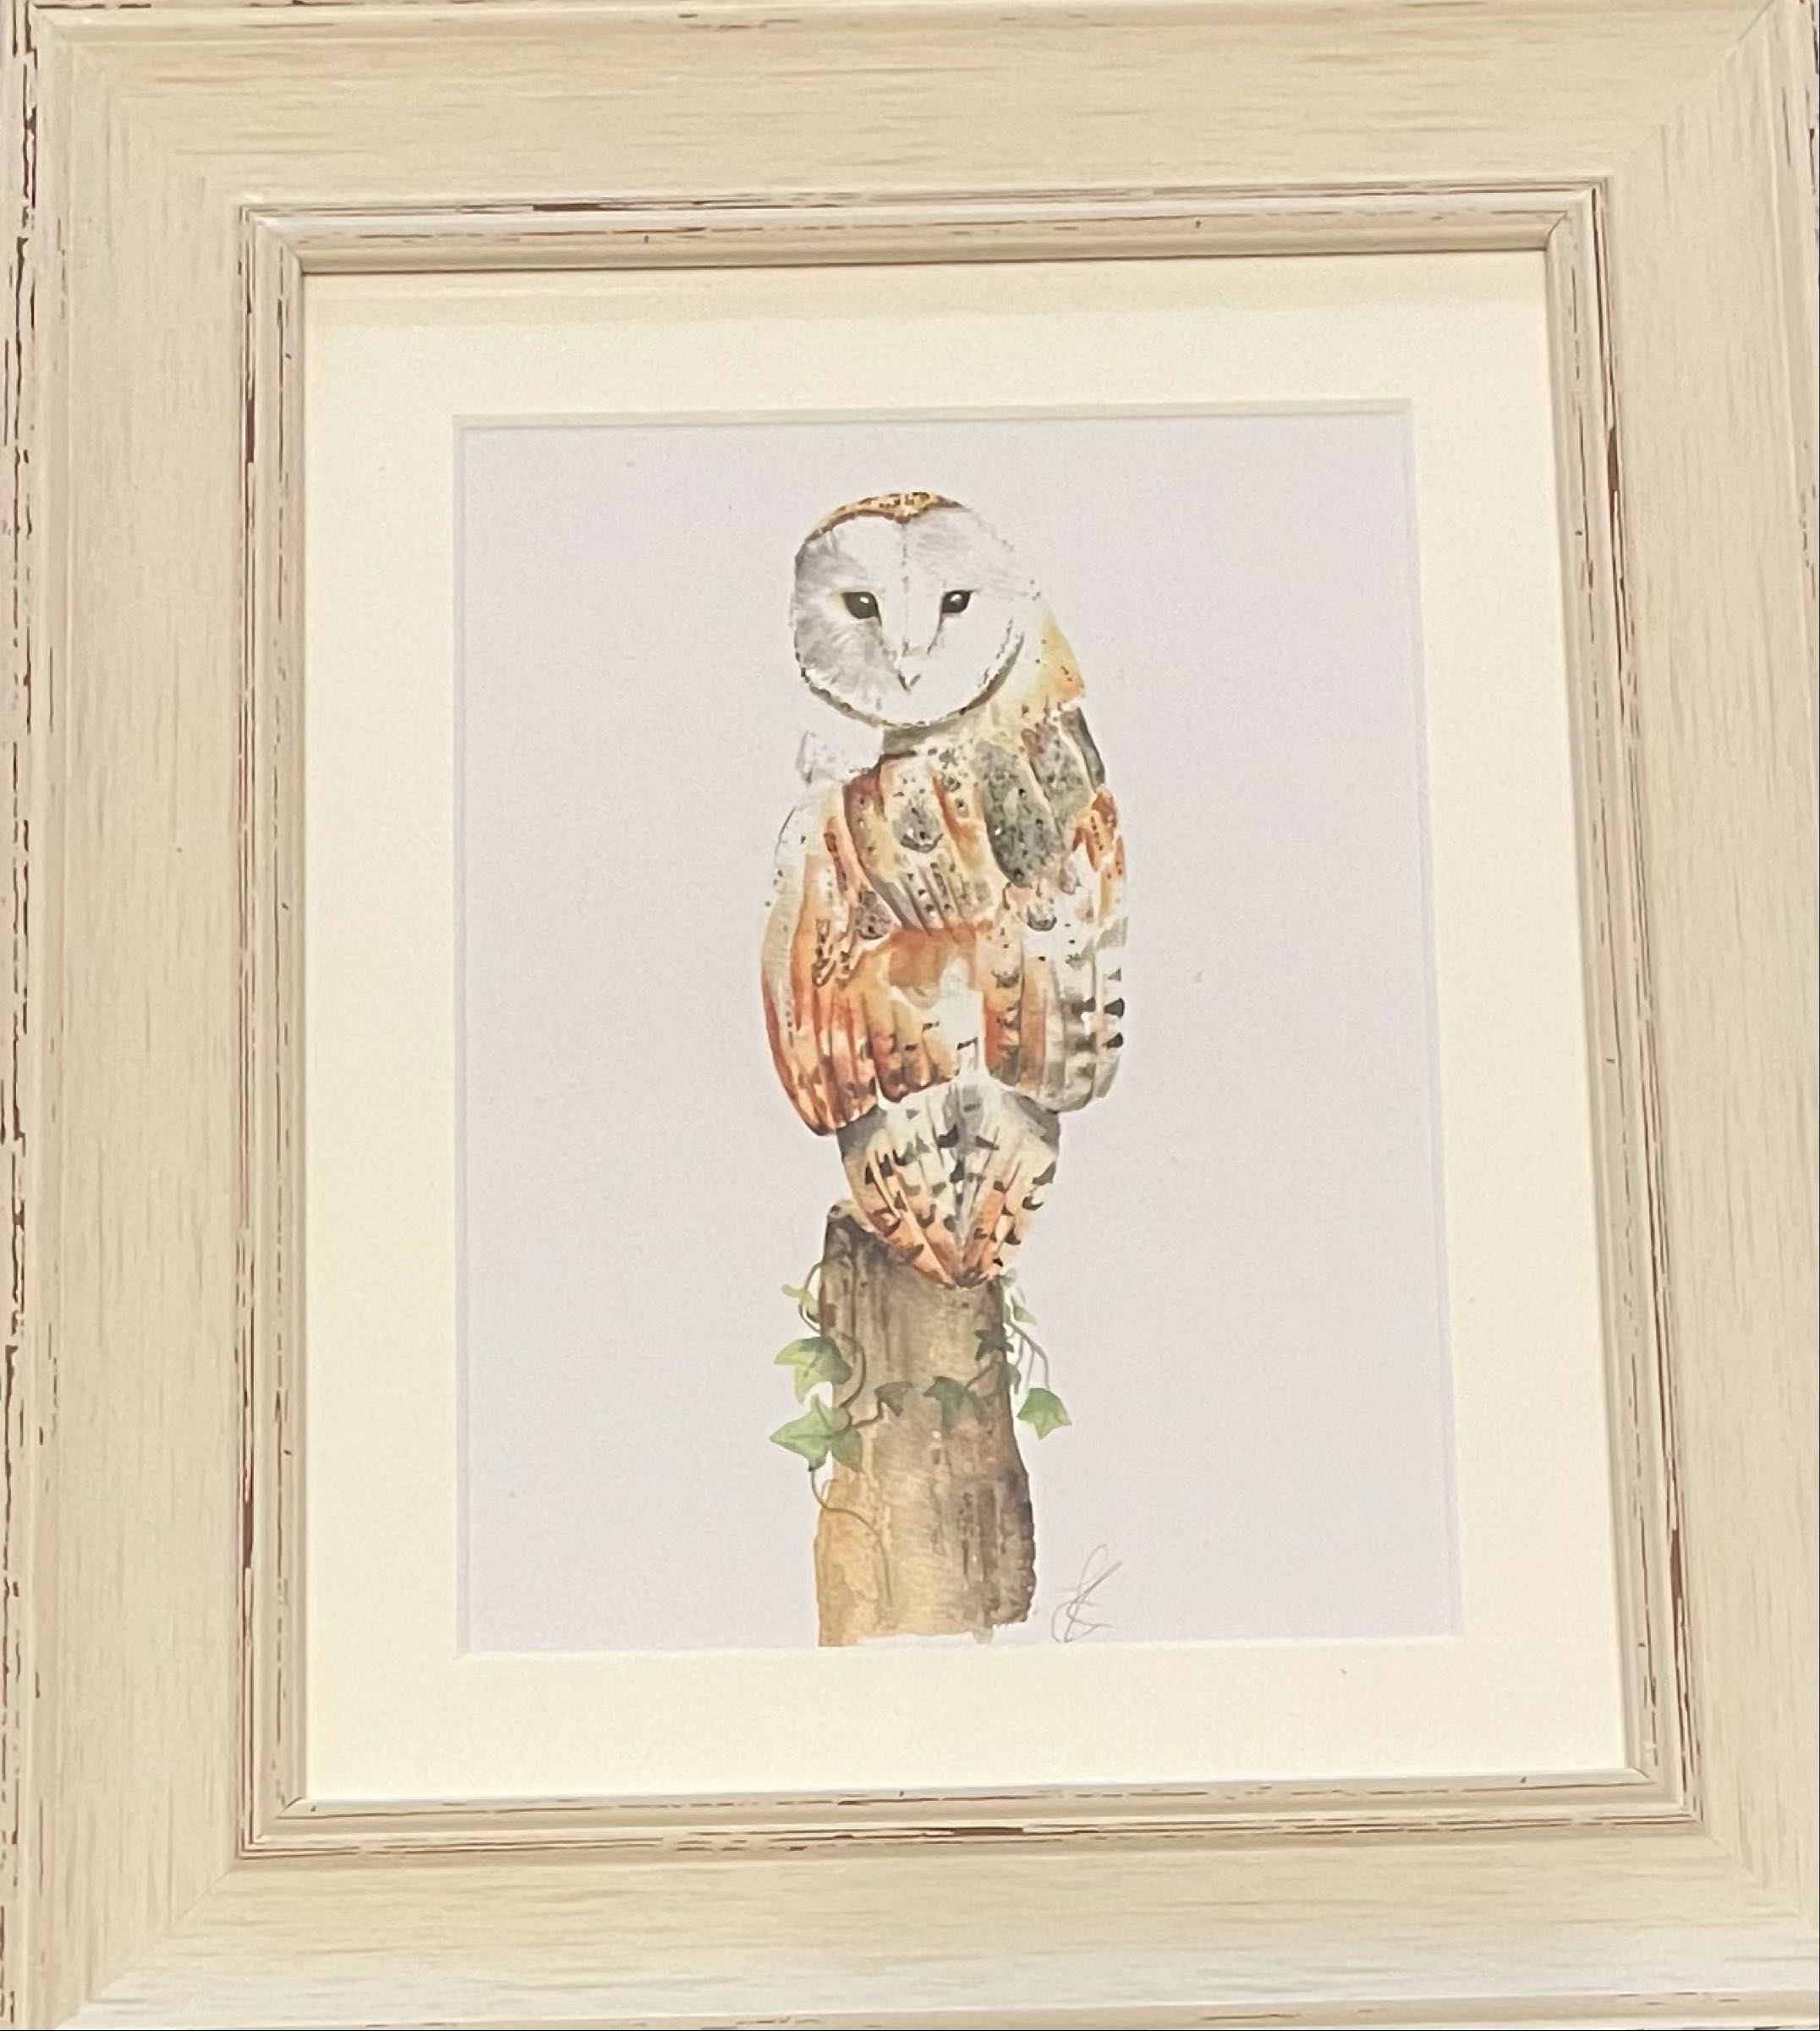 Barn Owl Framed Print by Sarah Reilly  28cmx33cm